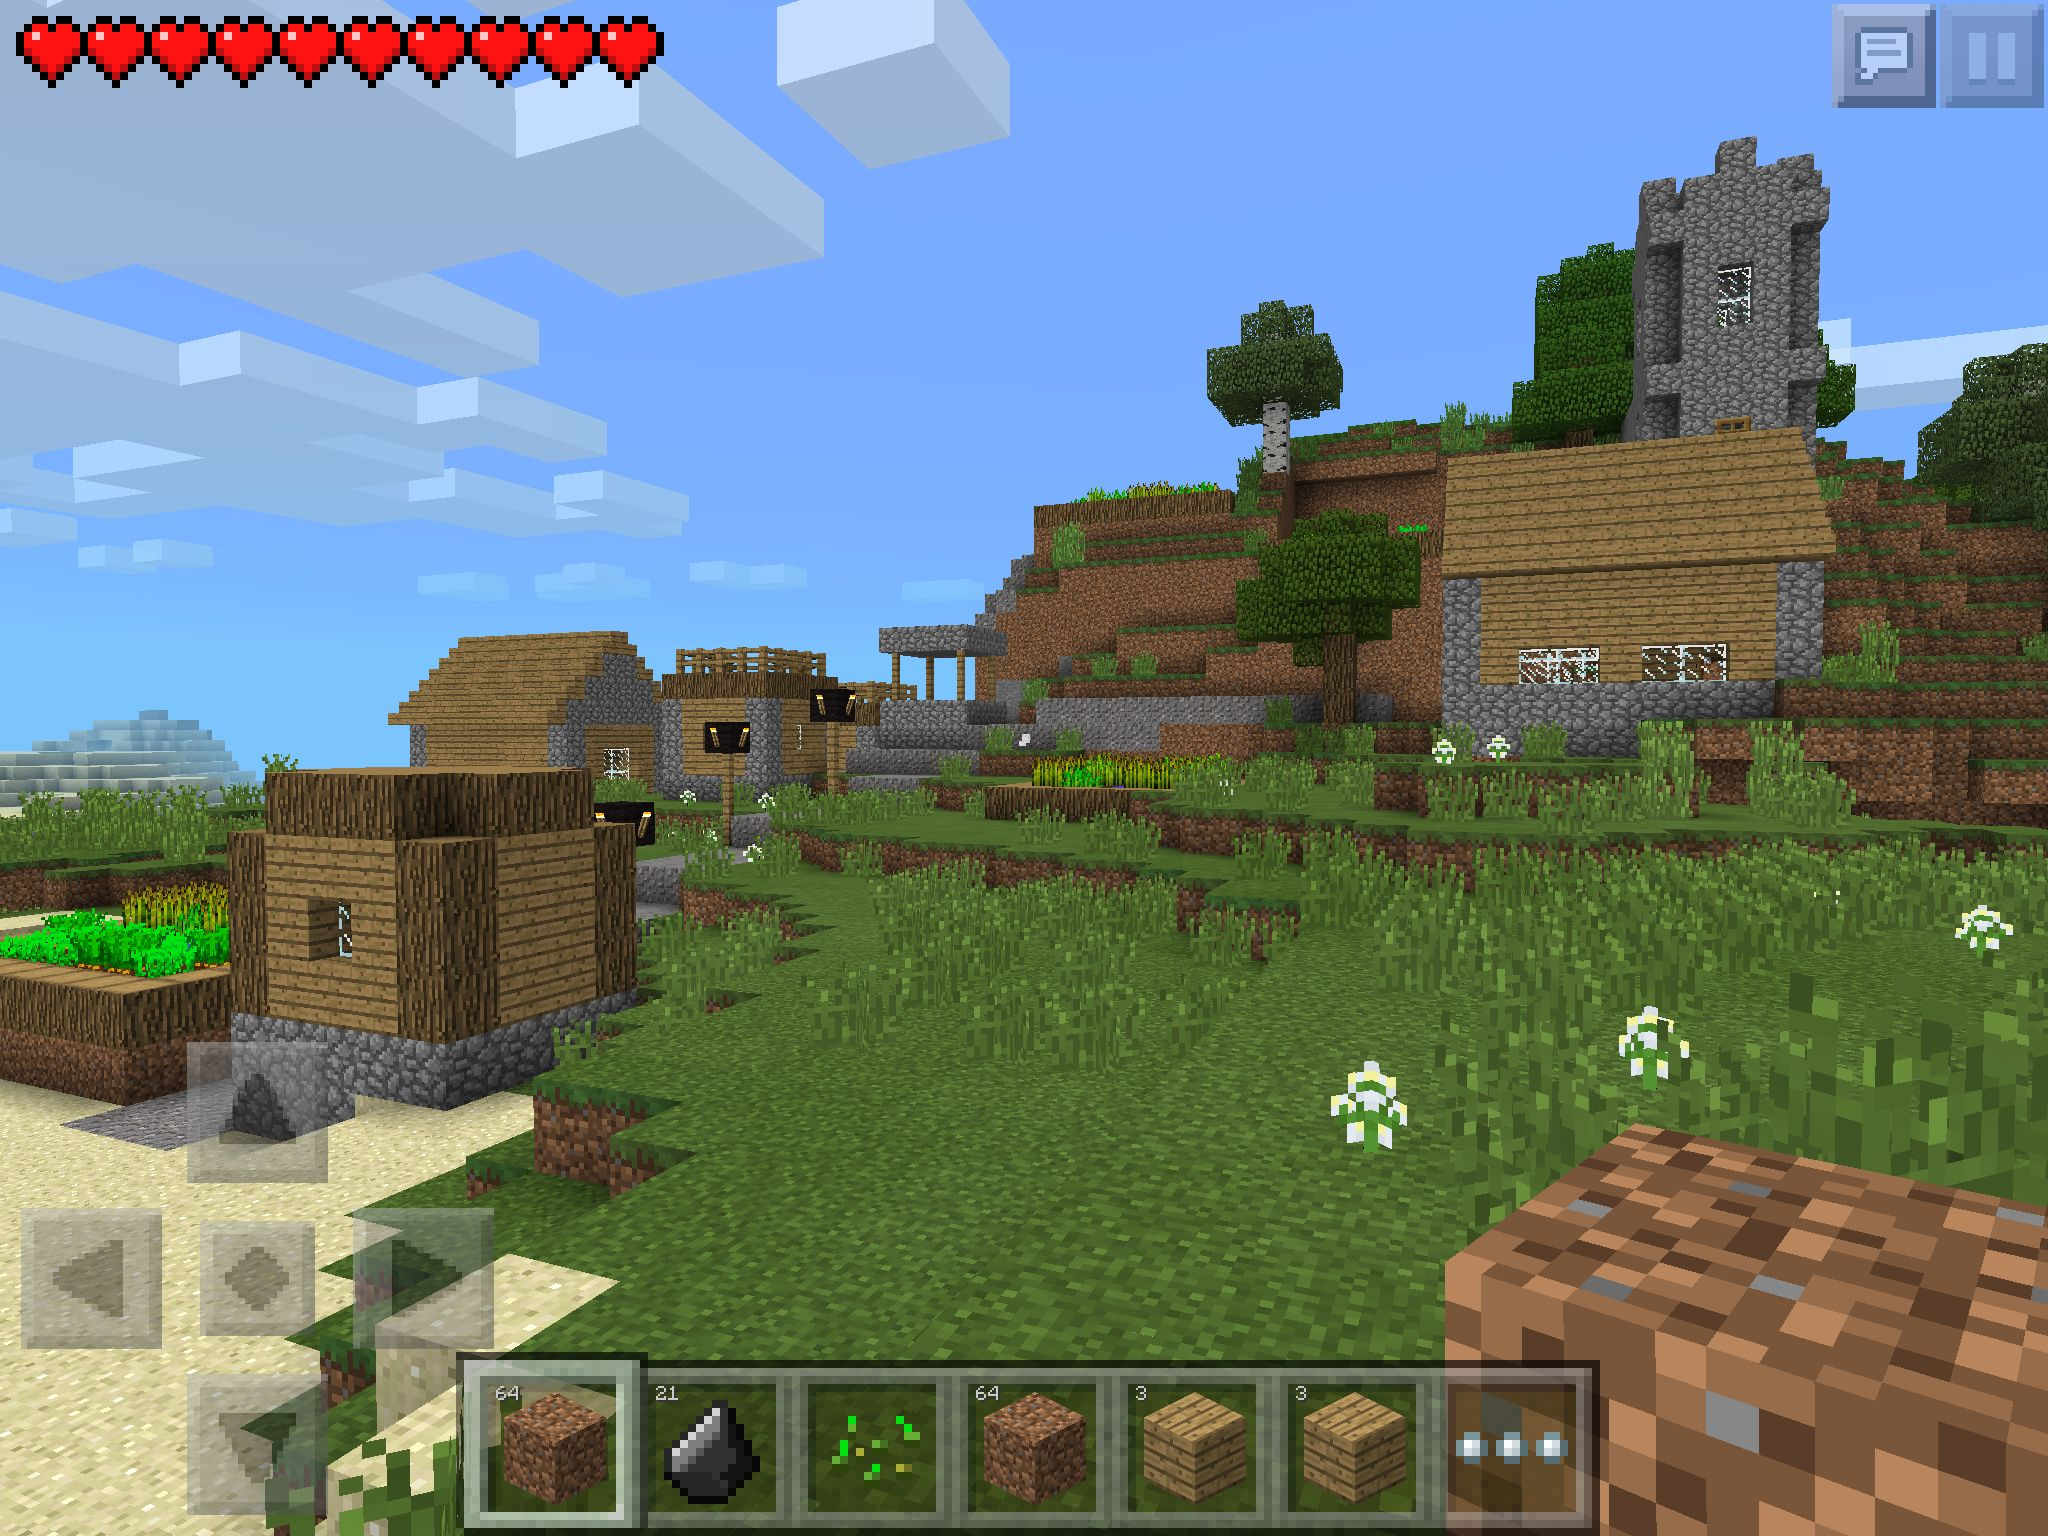 Minecraft Village Garden minecraft pe 0.10.0 the seed is mooshroom. there is a stronghold